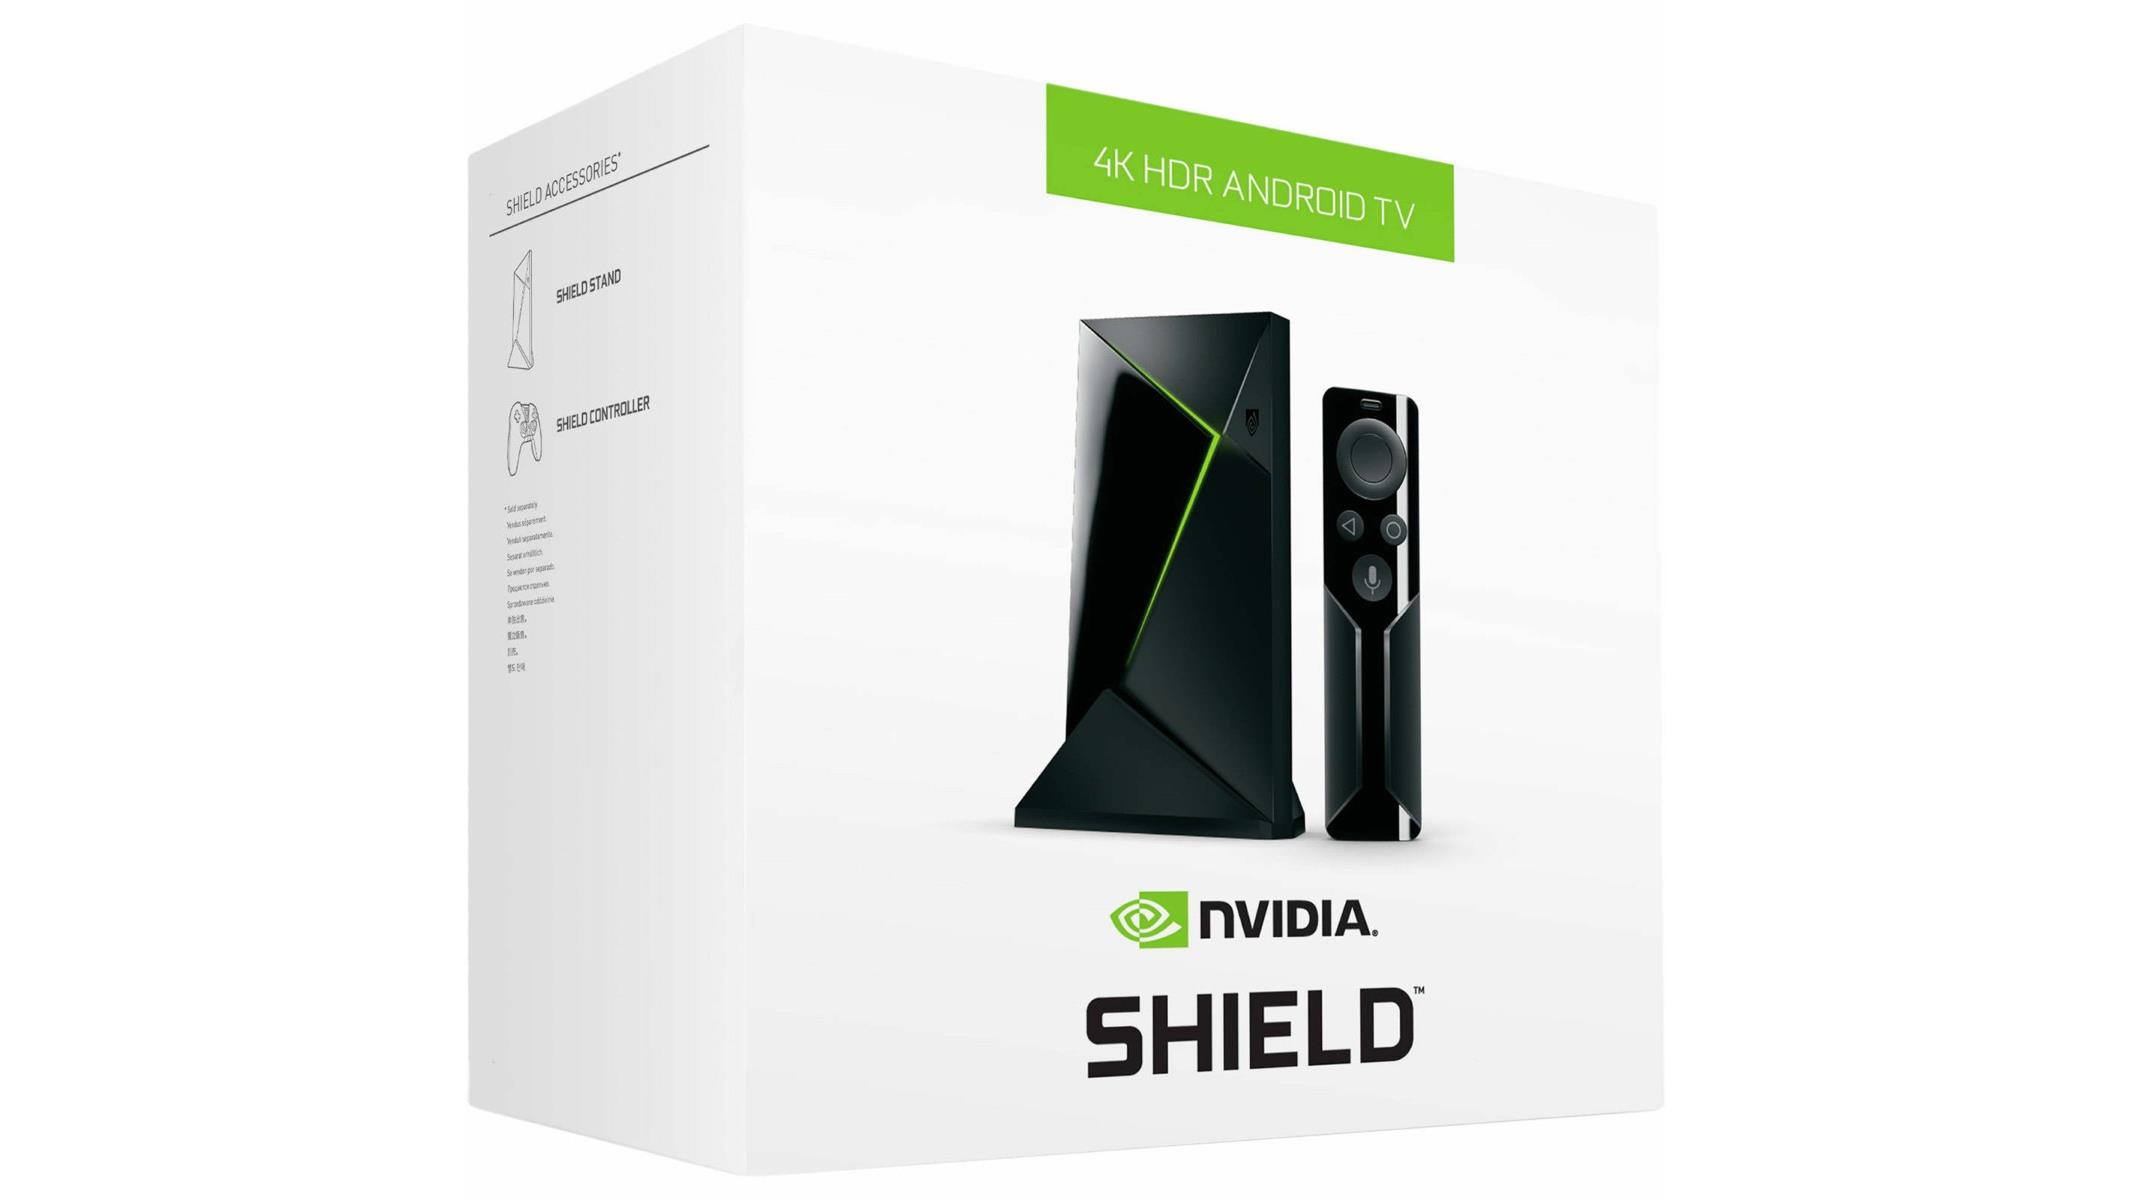 Updated NVIDIA SHIELD TV 4K Streamer Clears FCC With Revised